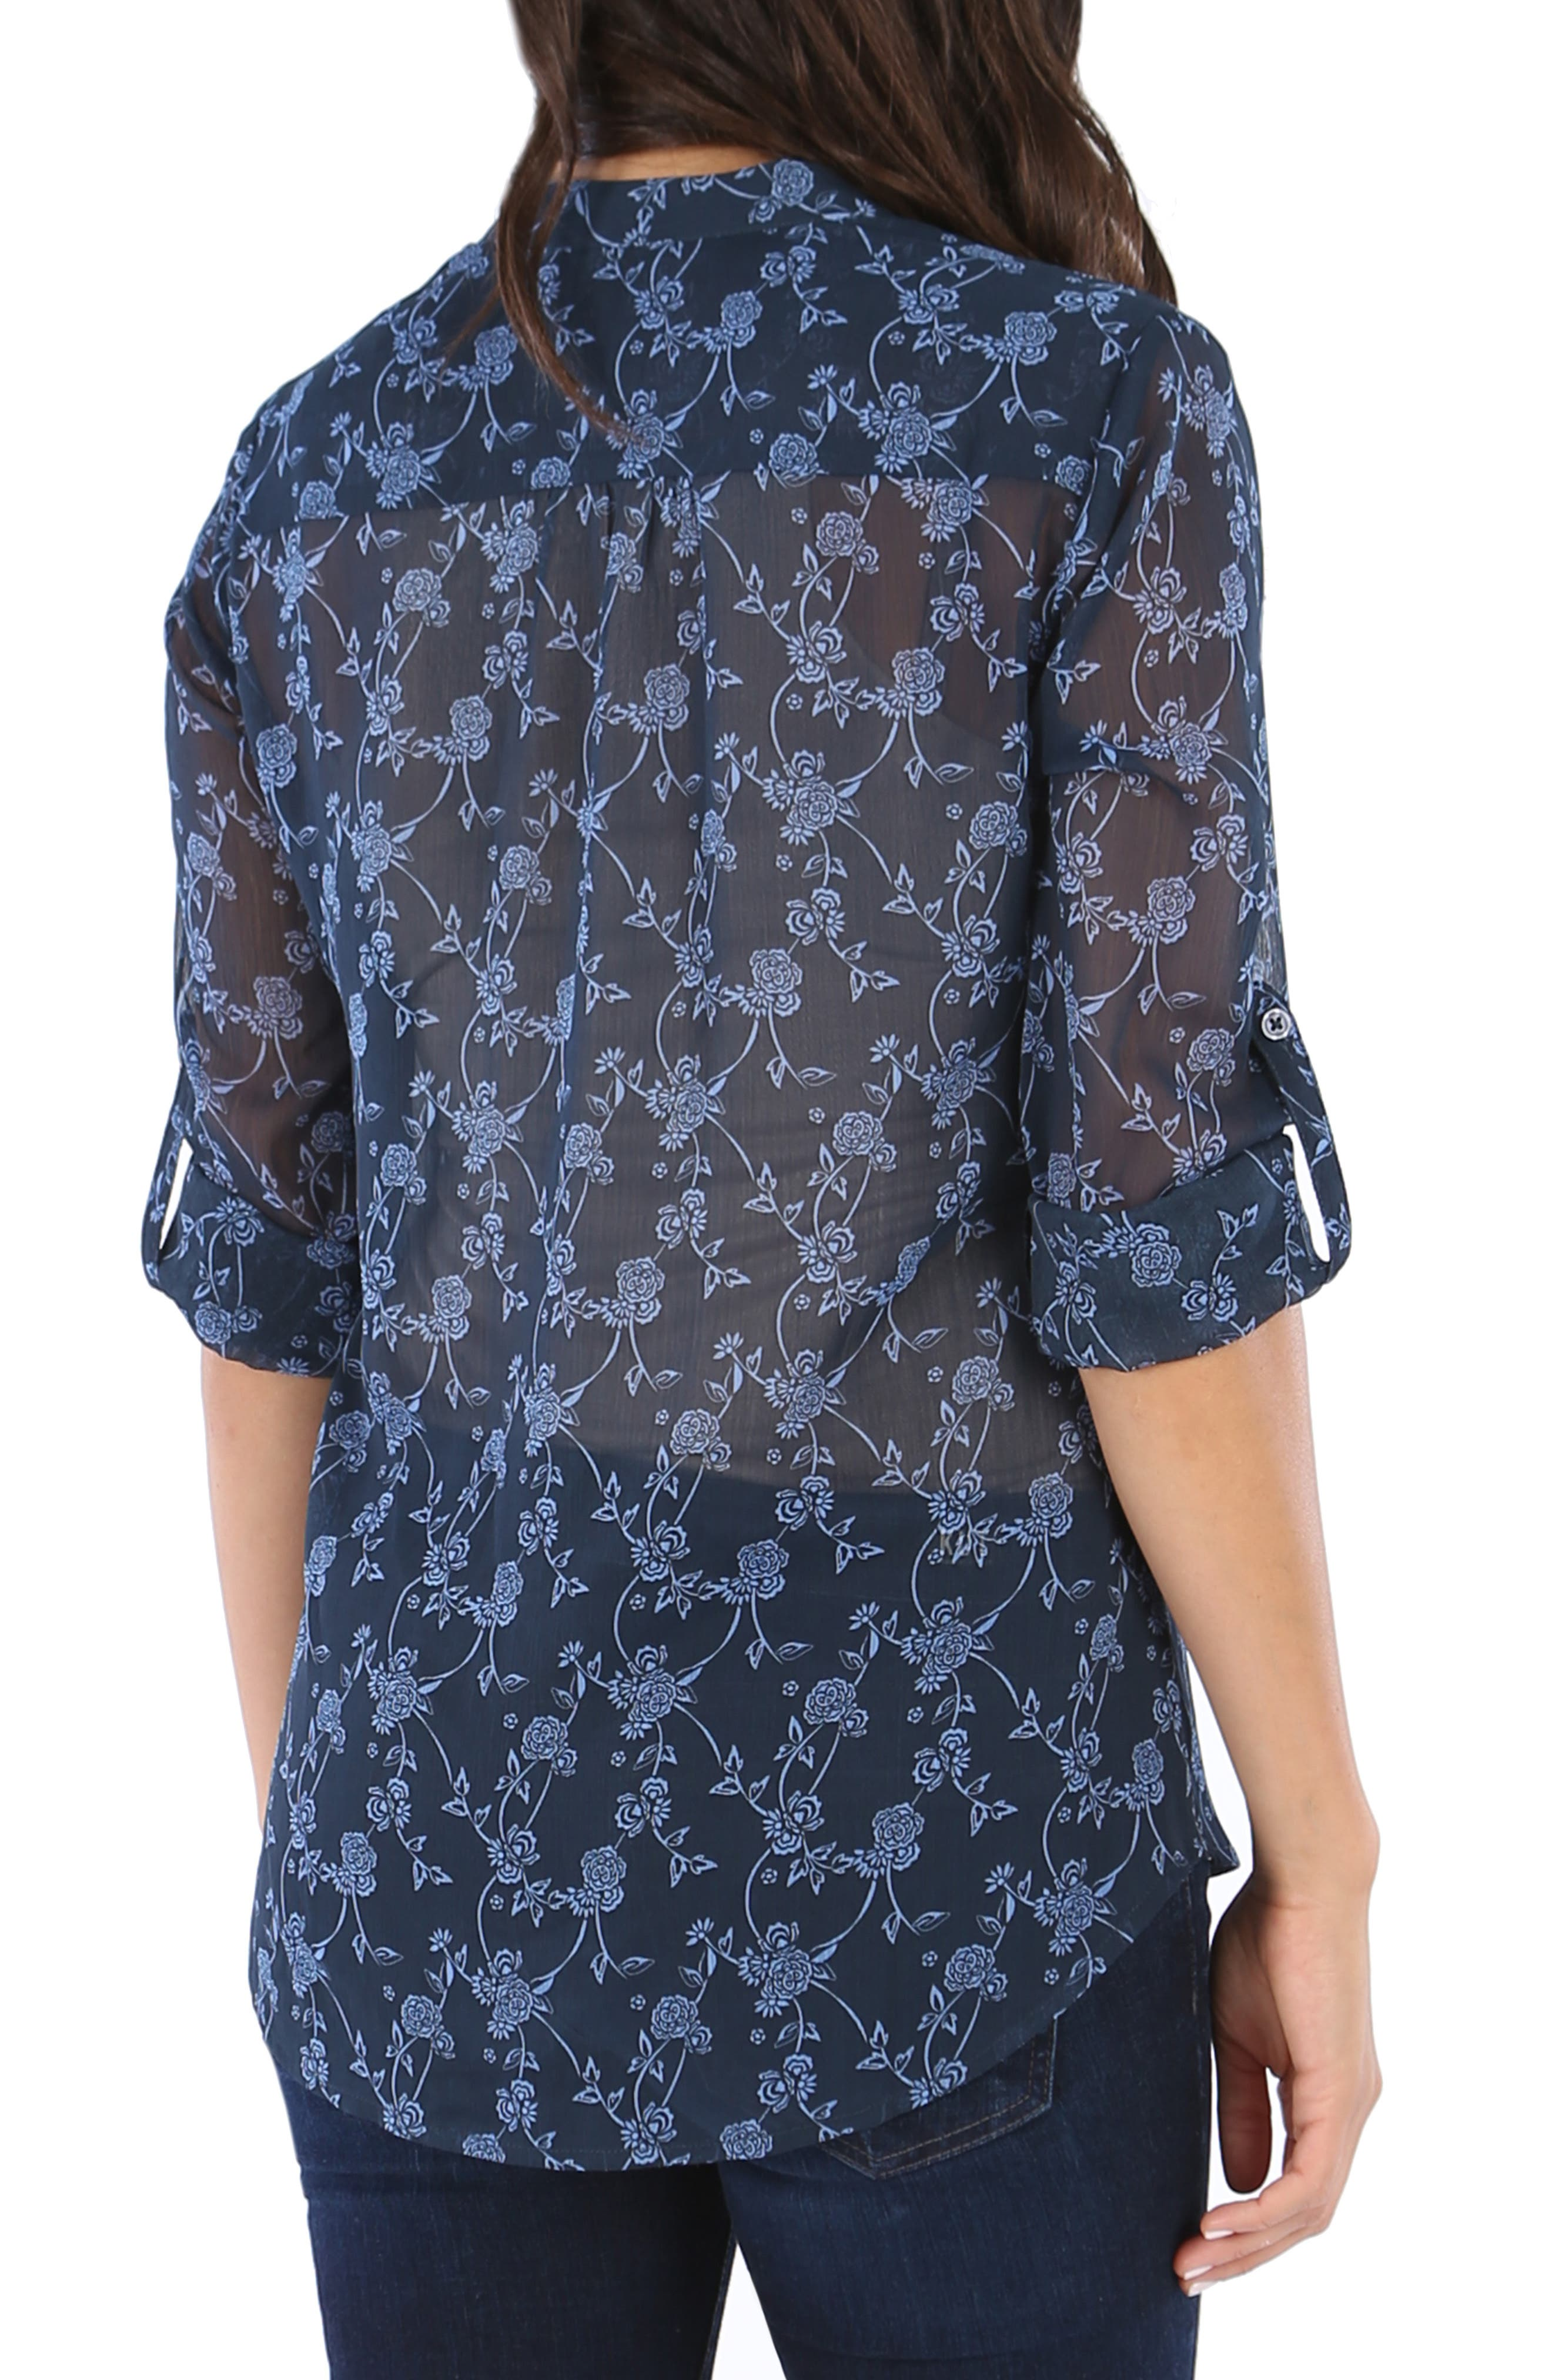 KUT from the the Kloth Jasmine Floral Blouse,                             Alternate thumbnail 2, color,                             416